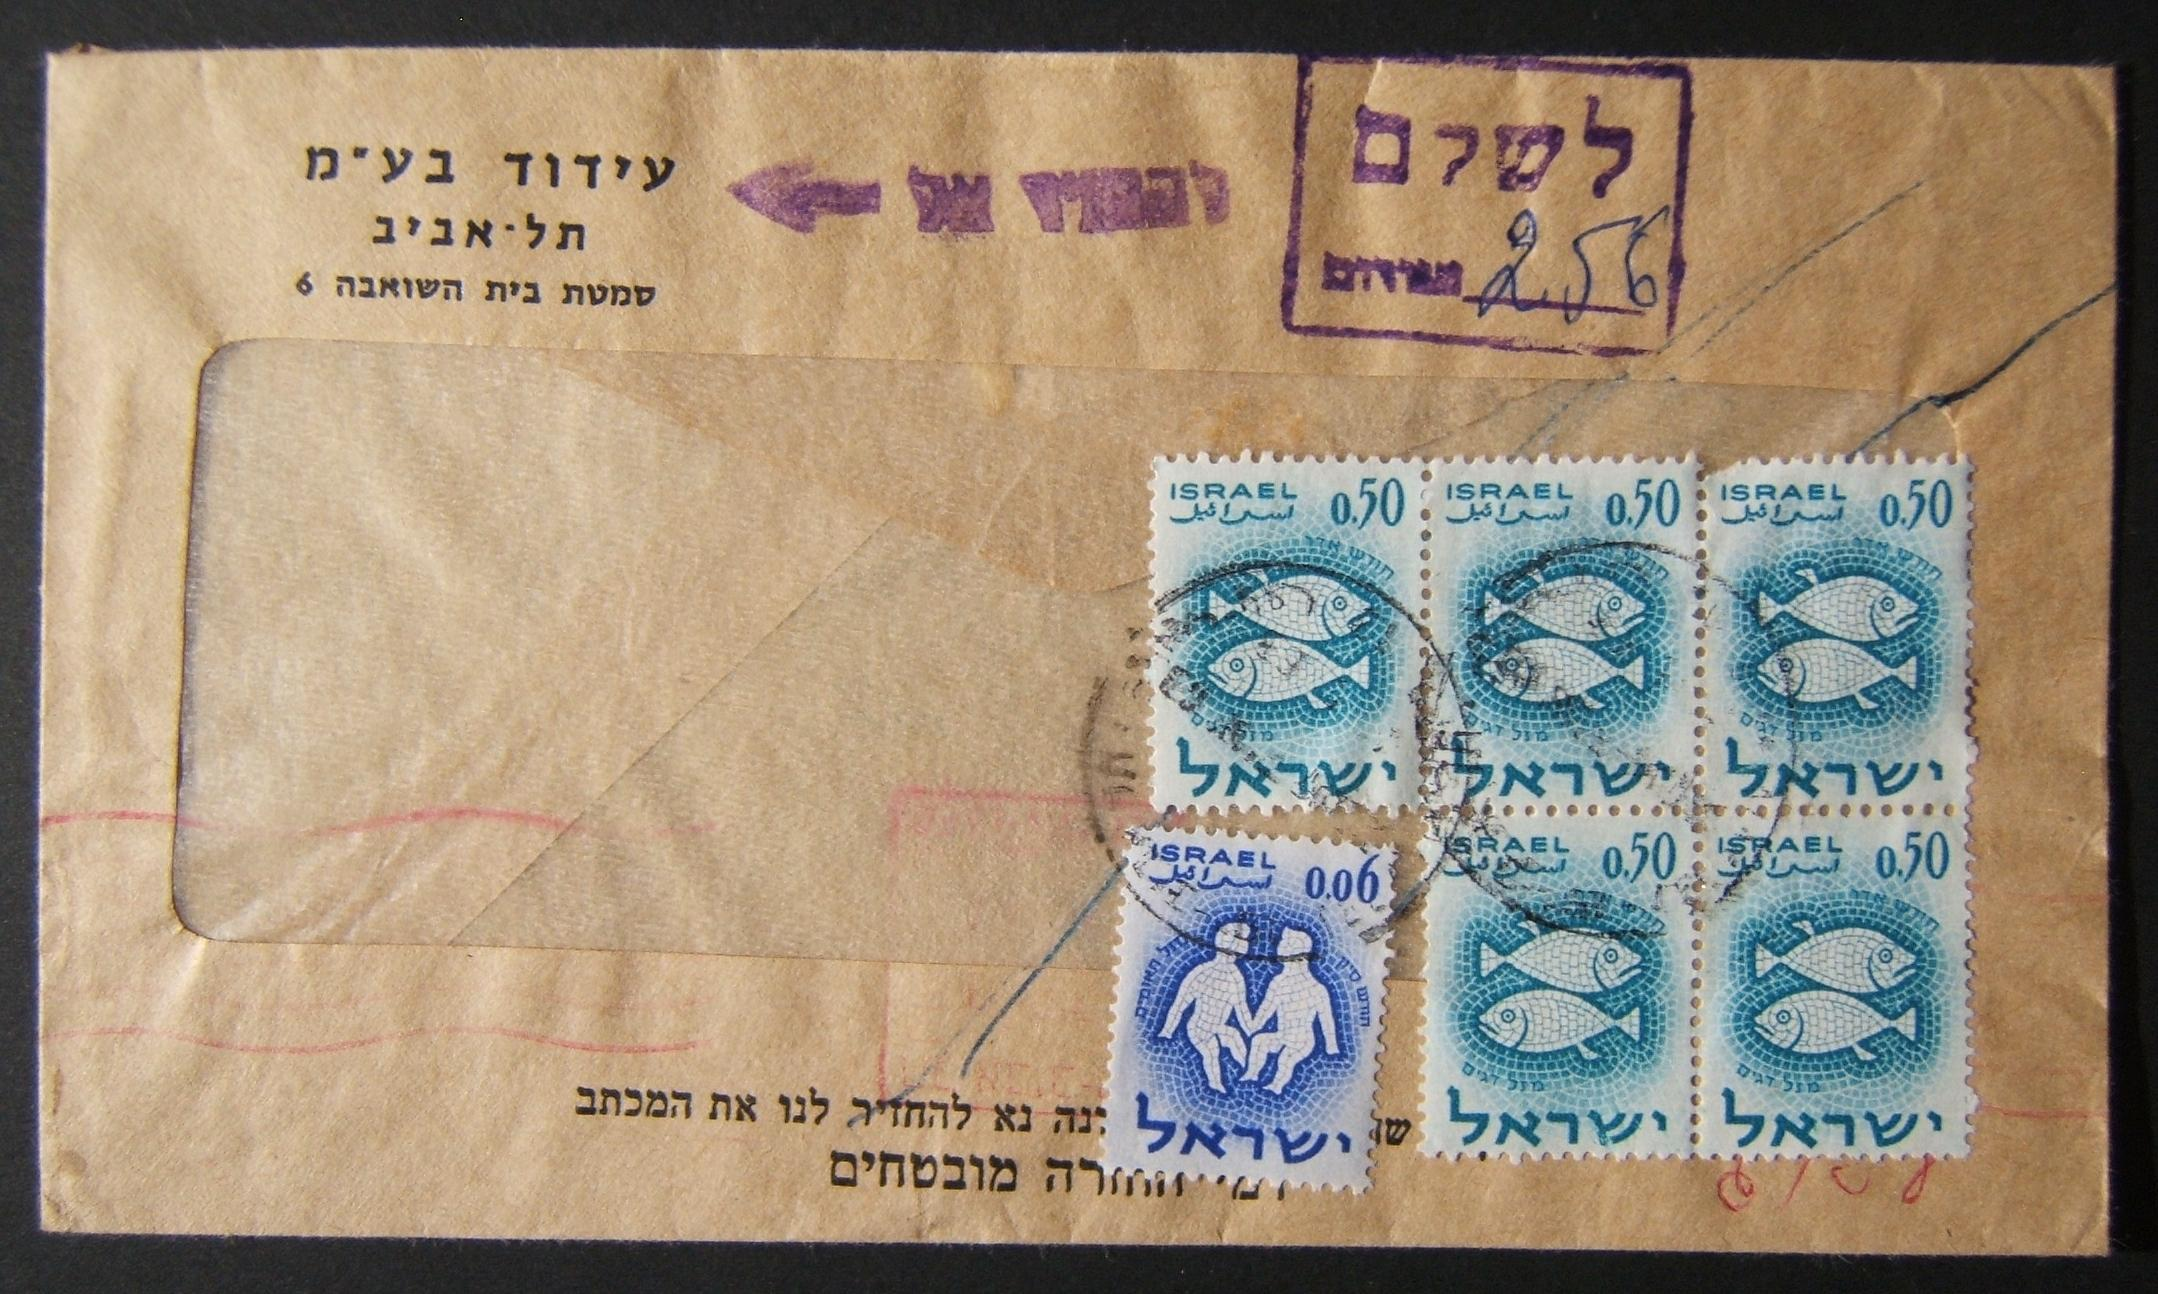 1963 domestic 'top of the pile' taxed franking: 1963 printed matter commercial cover ex TLV branch of Idud Ltd. franked by machine prepayment at the DO-11 period 8 Ag PM rate (at b